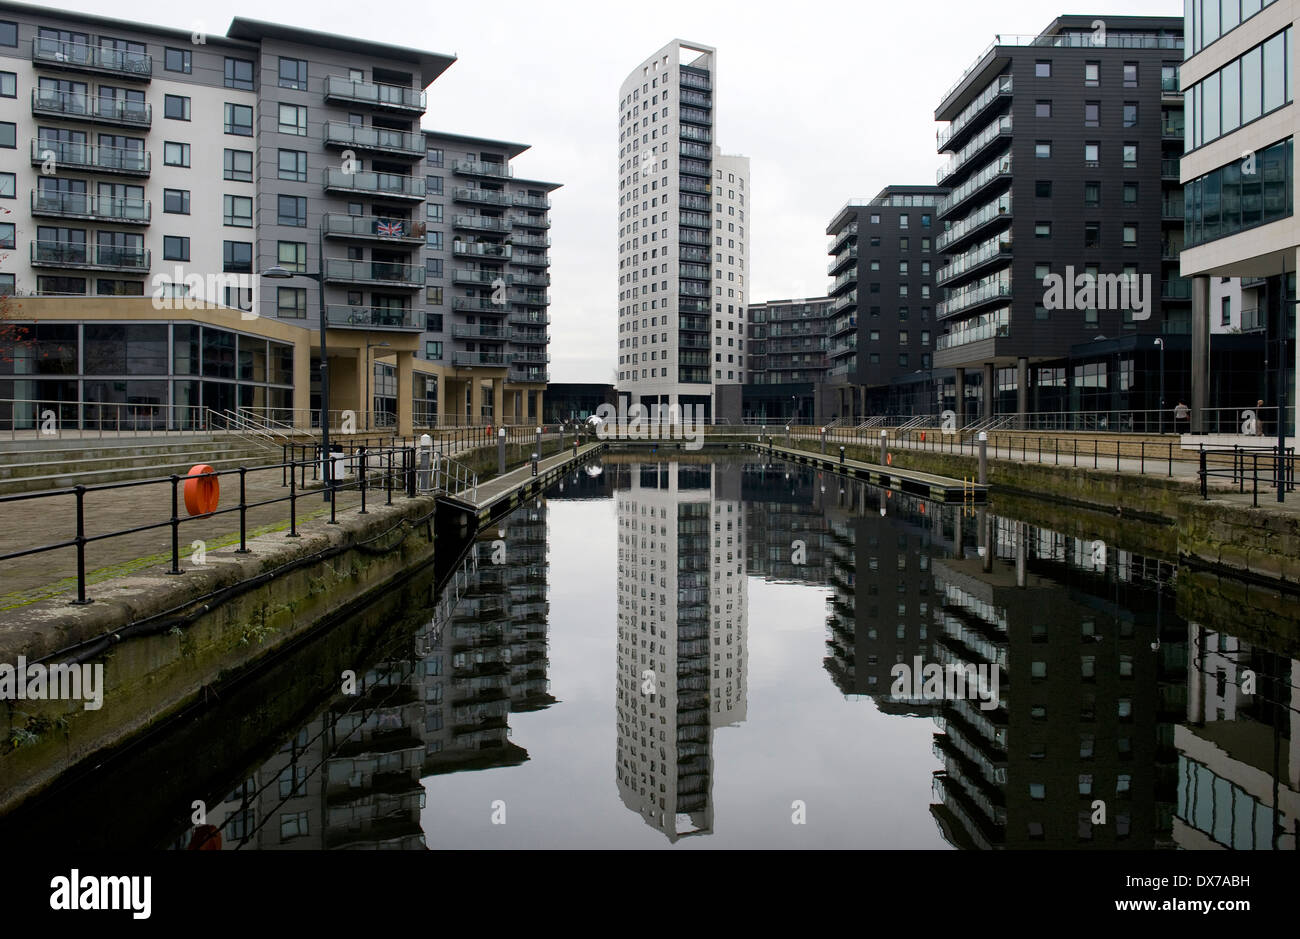 New Dock (formerly Clarence Dock) is a mixed development with retail, office and leisure presence in central Leeds, UK - Stock Image